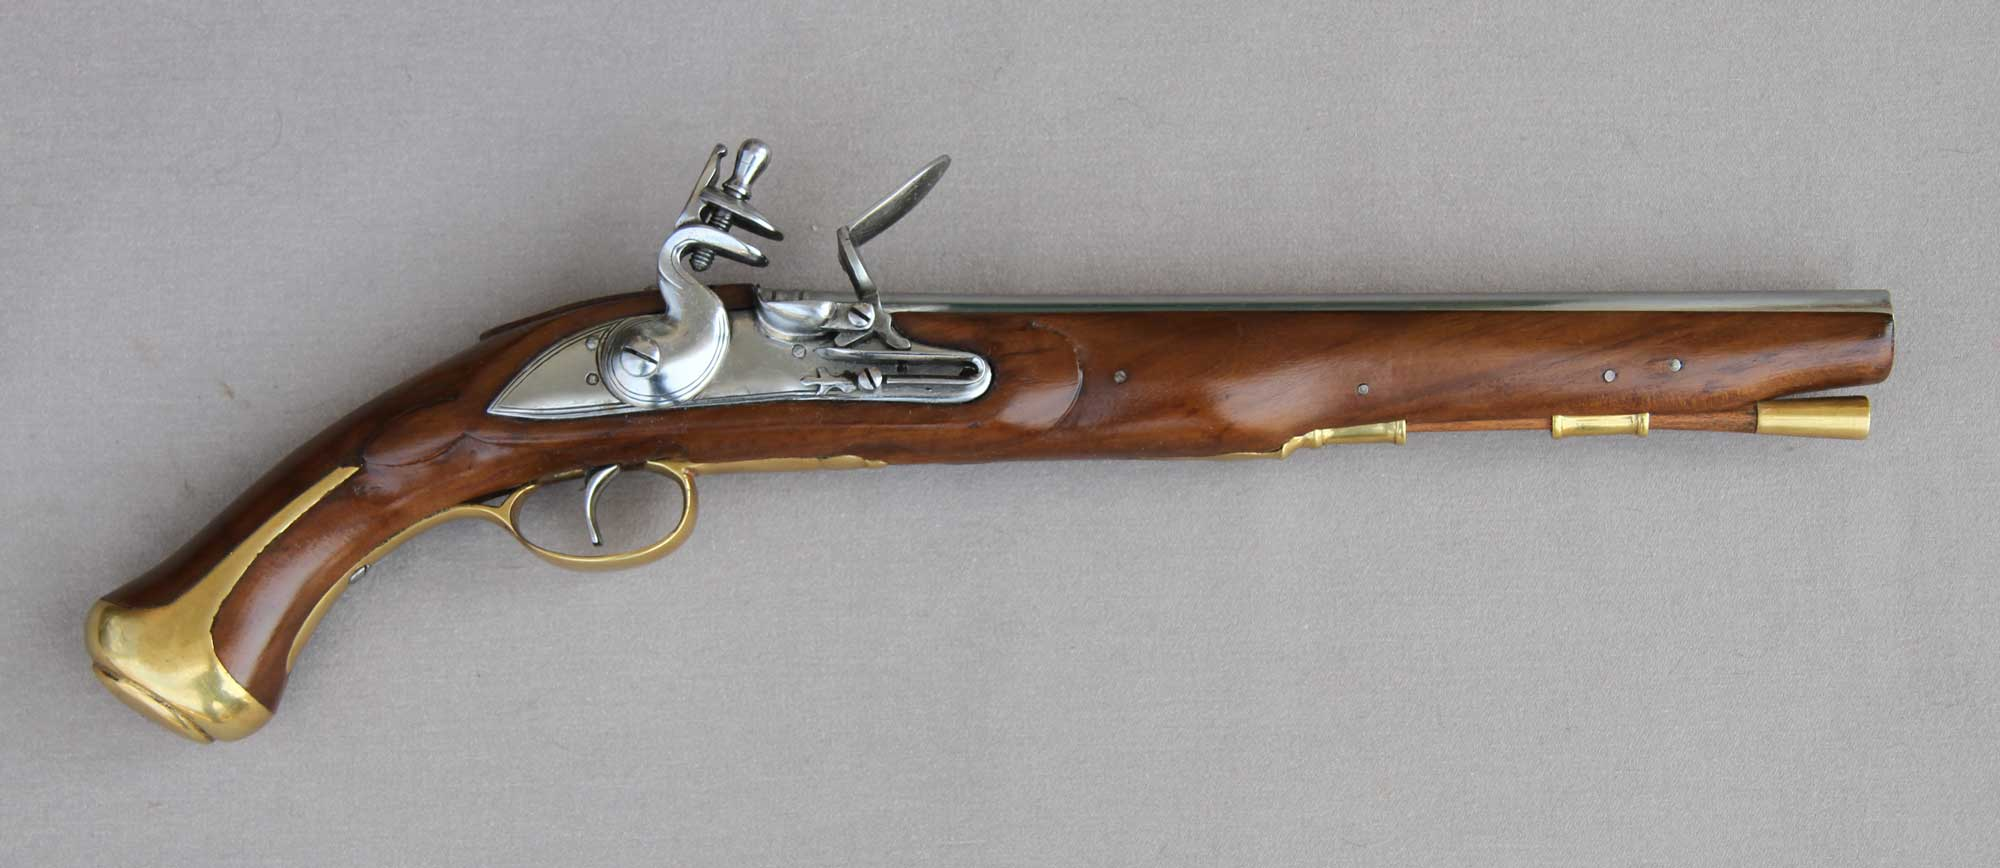 British Dragoon pistol